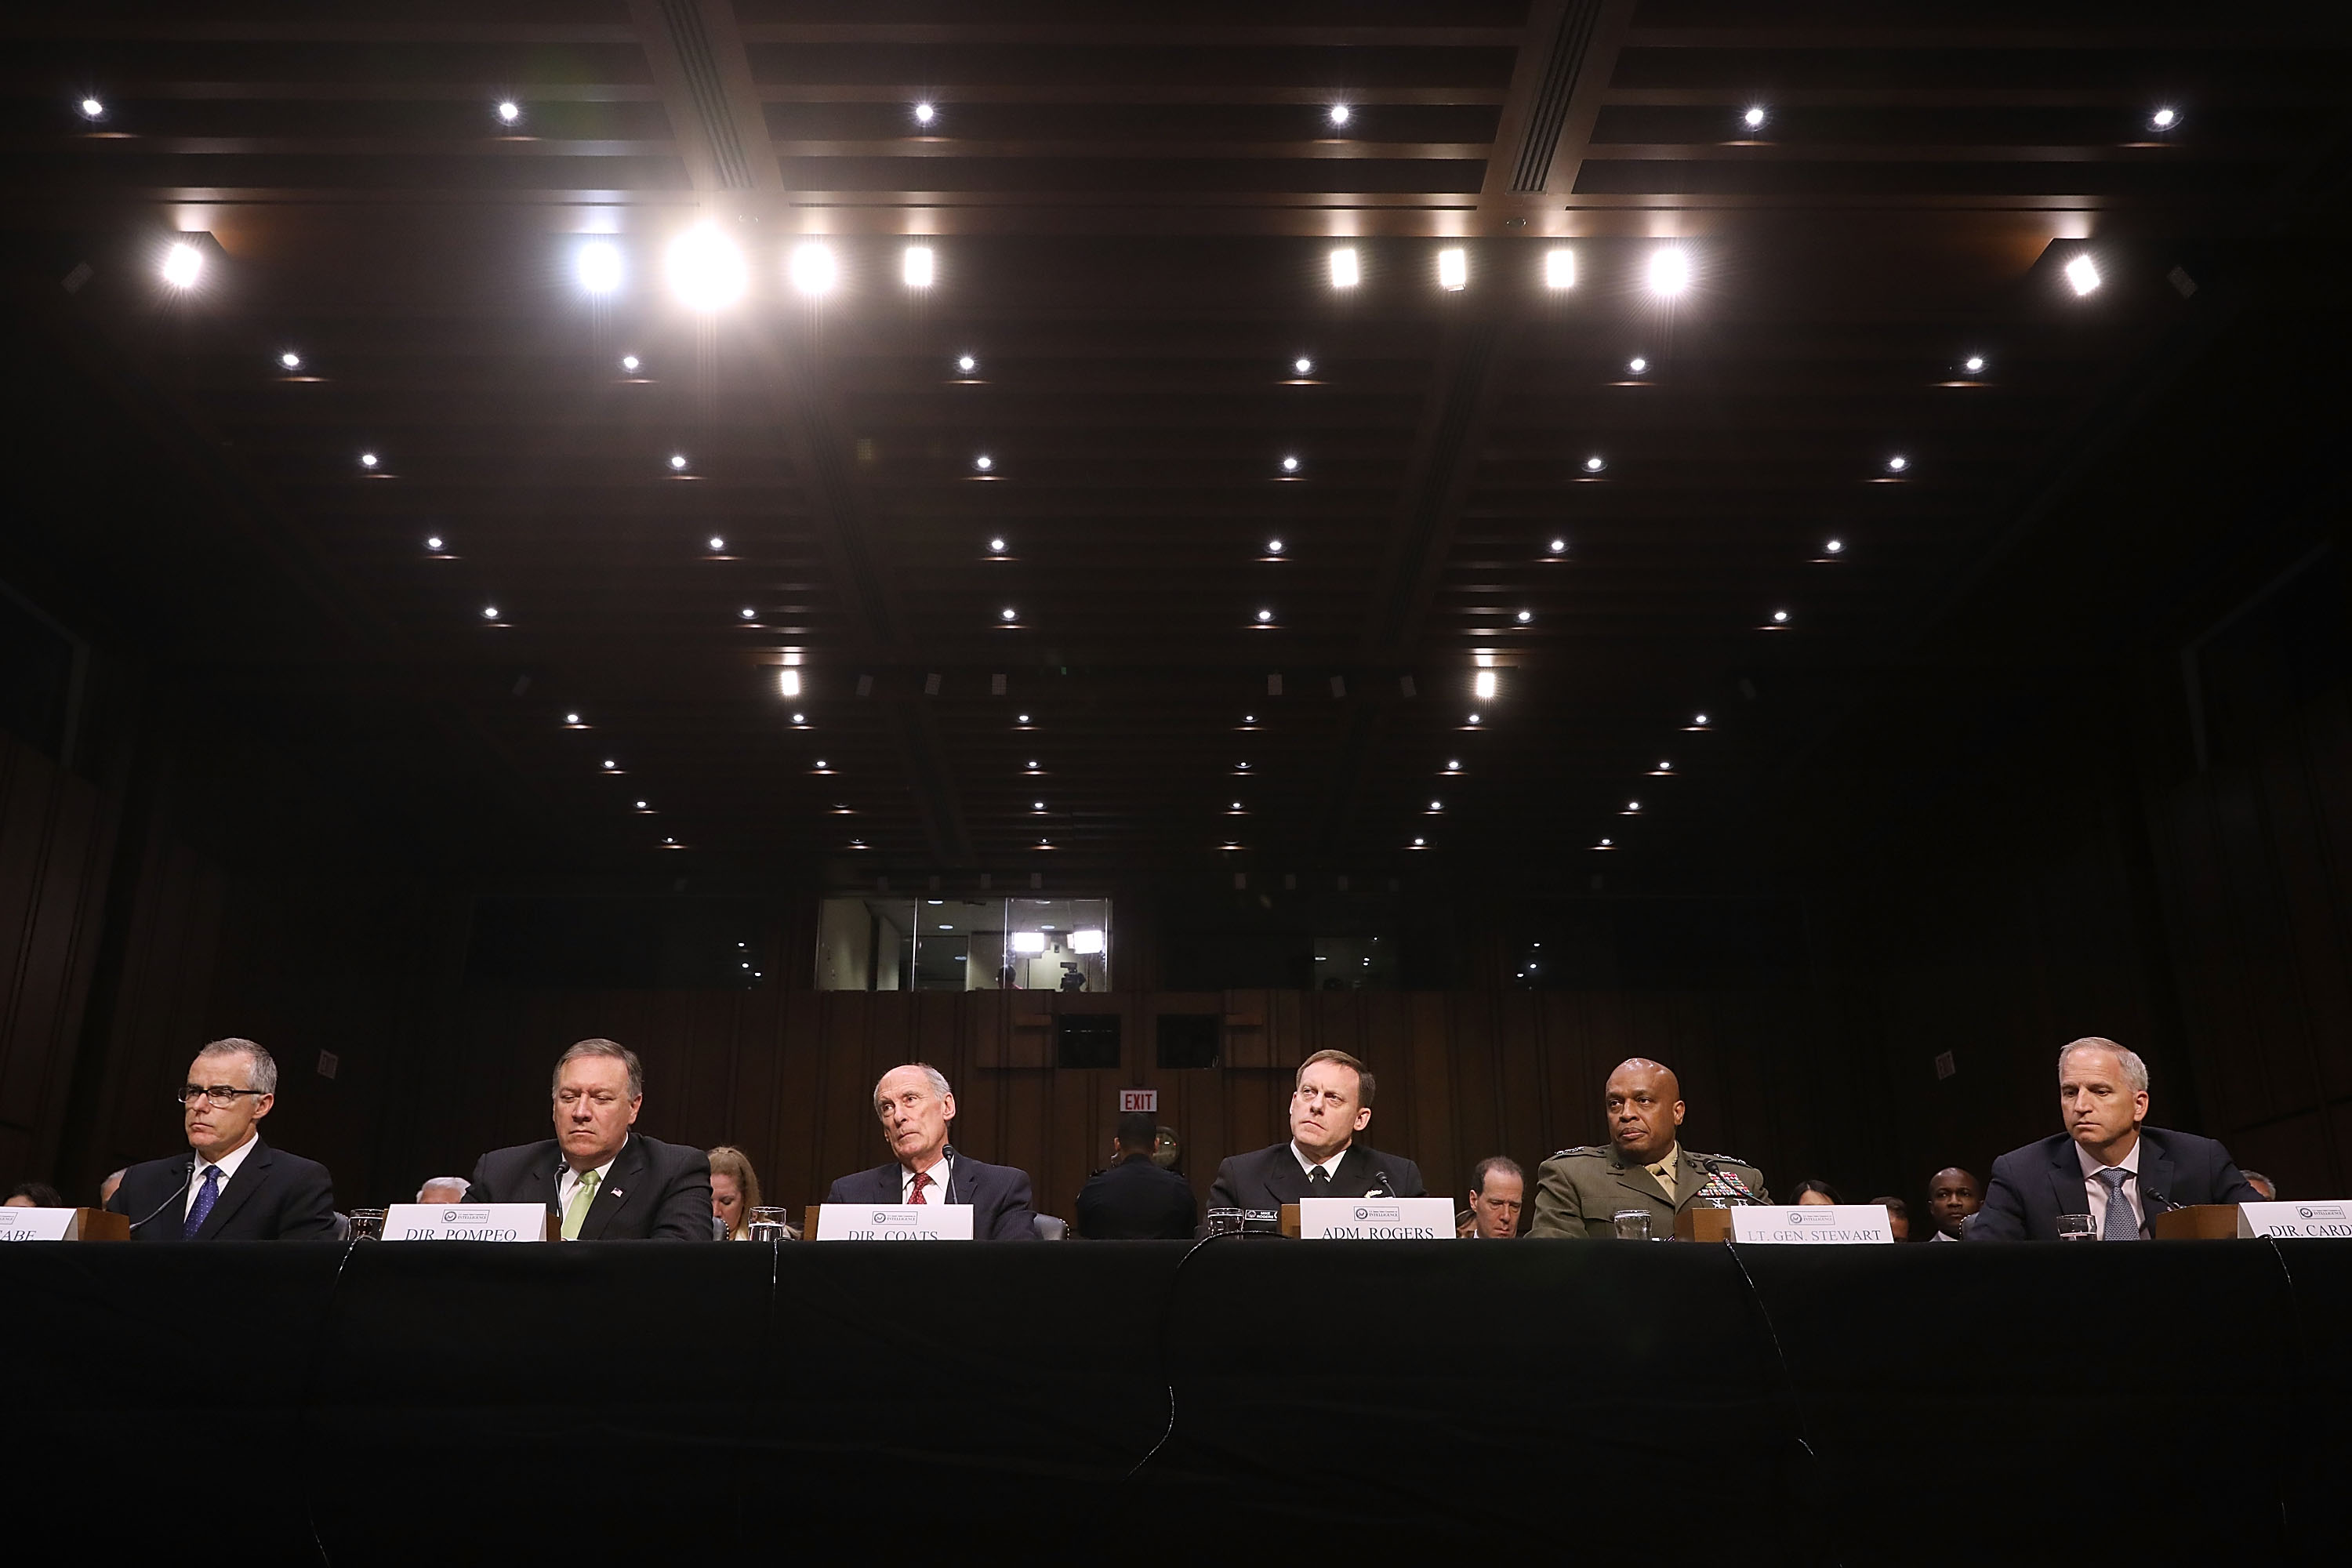 The top brass in the U.S. intelligence community are keeping their mouths shut about software vulnerabilities.